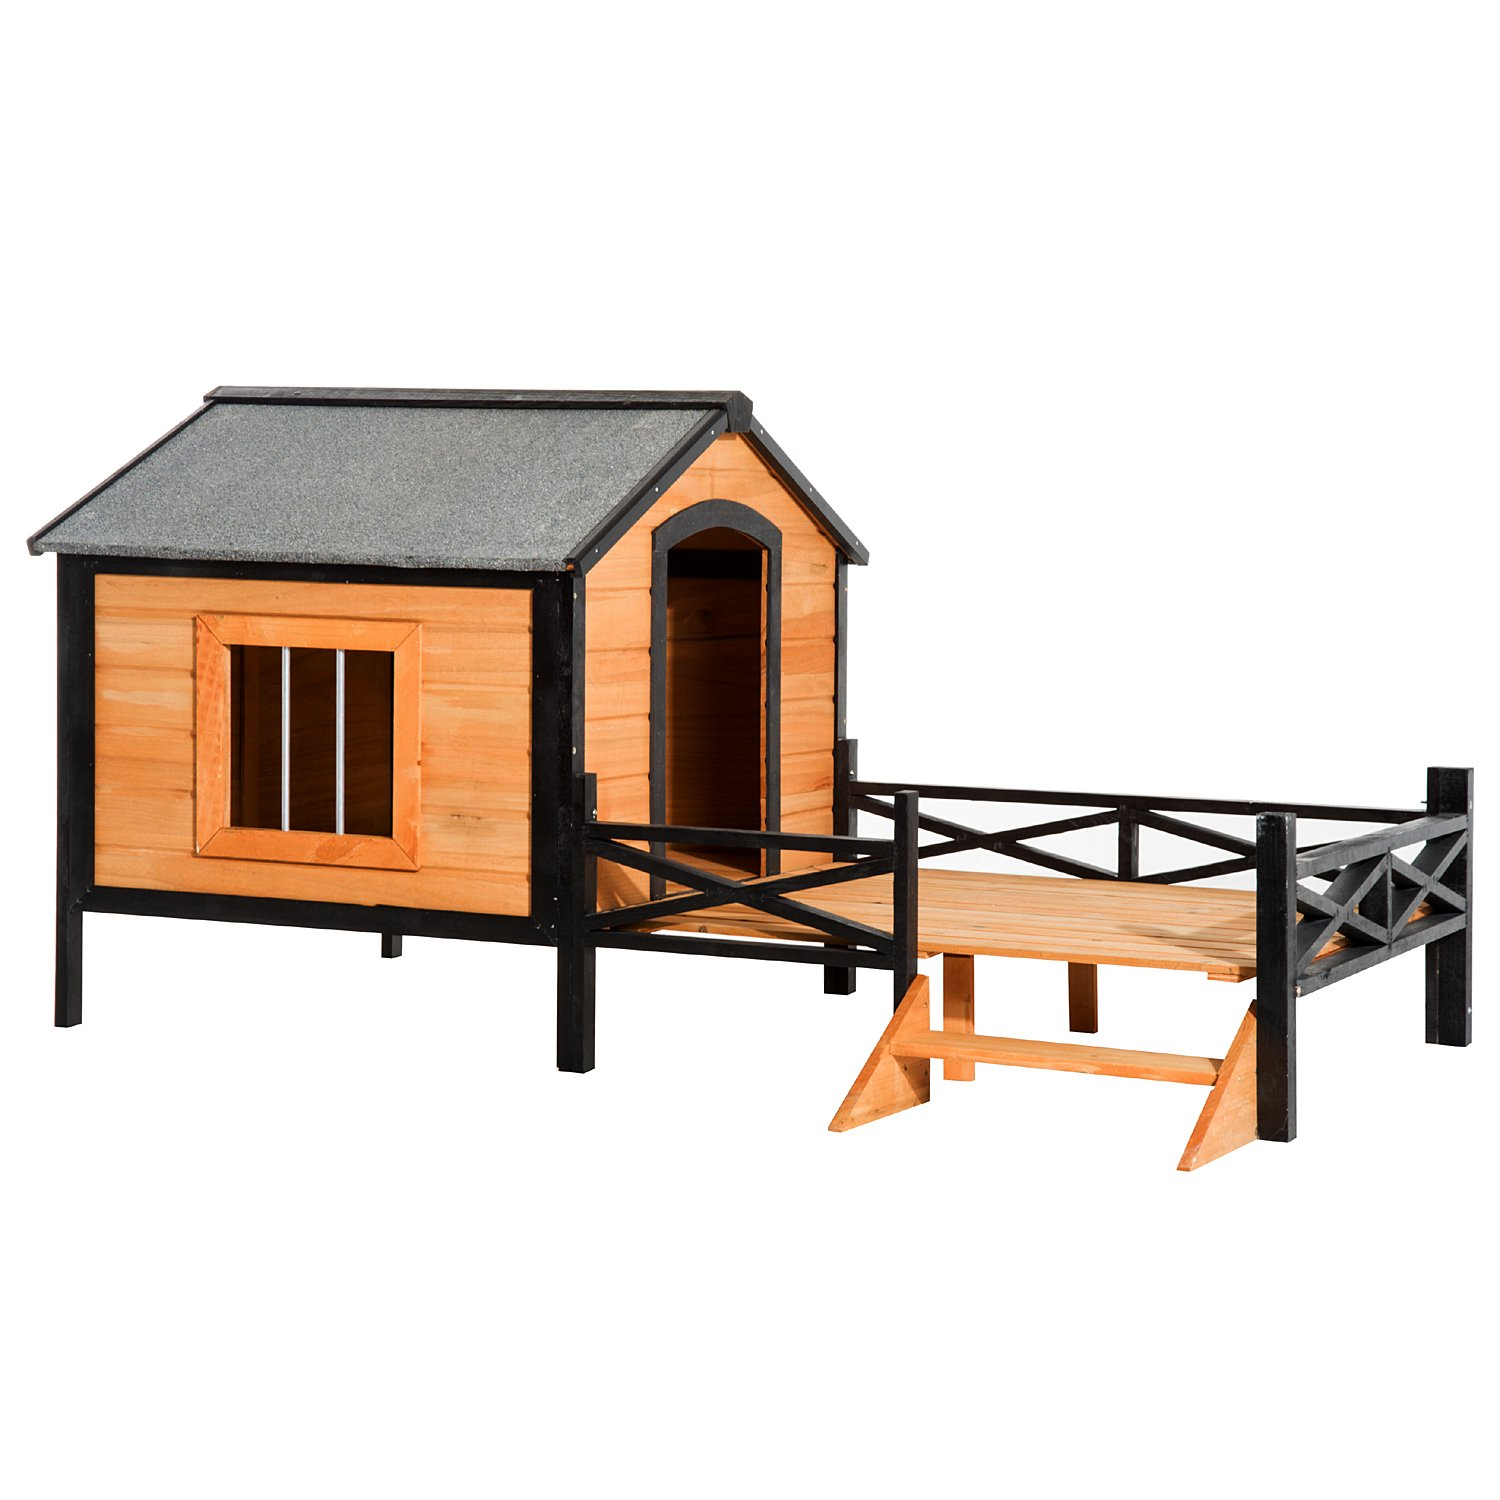 PawHut 67'' Large Wooden Cabin Style Elevated Outdoor Dog House with Porch